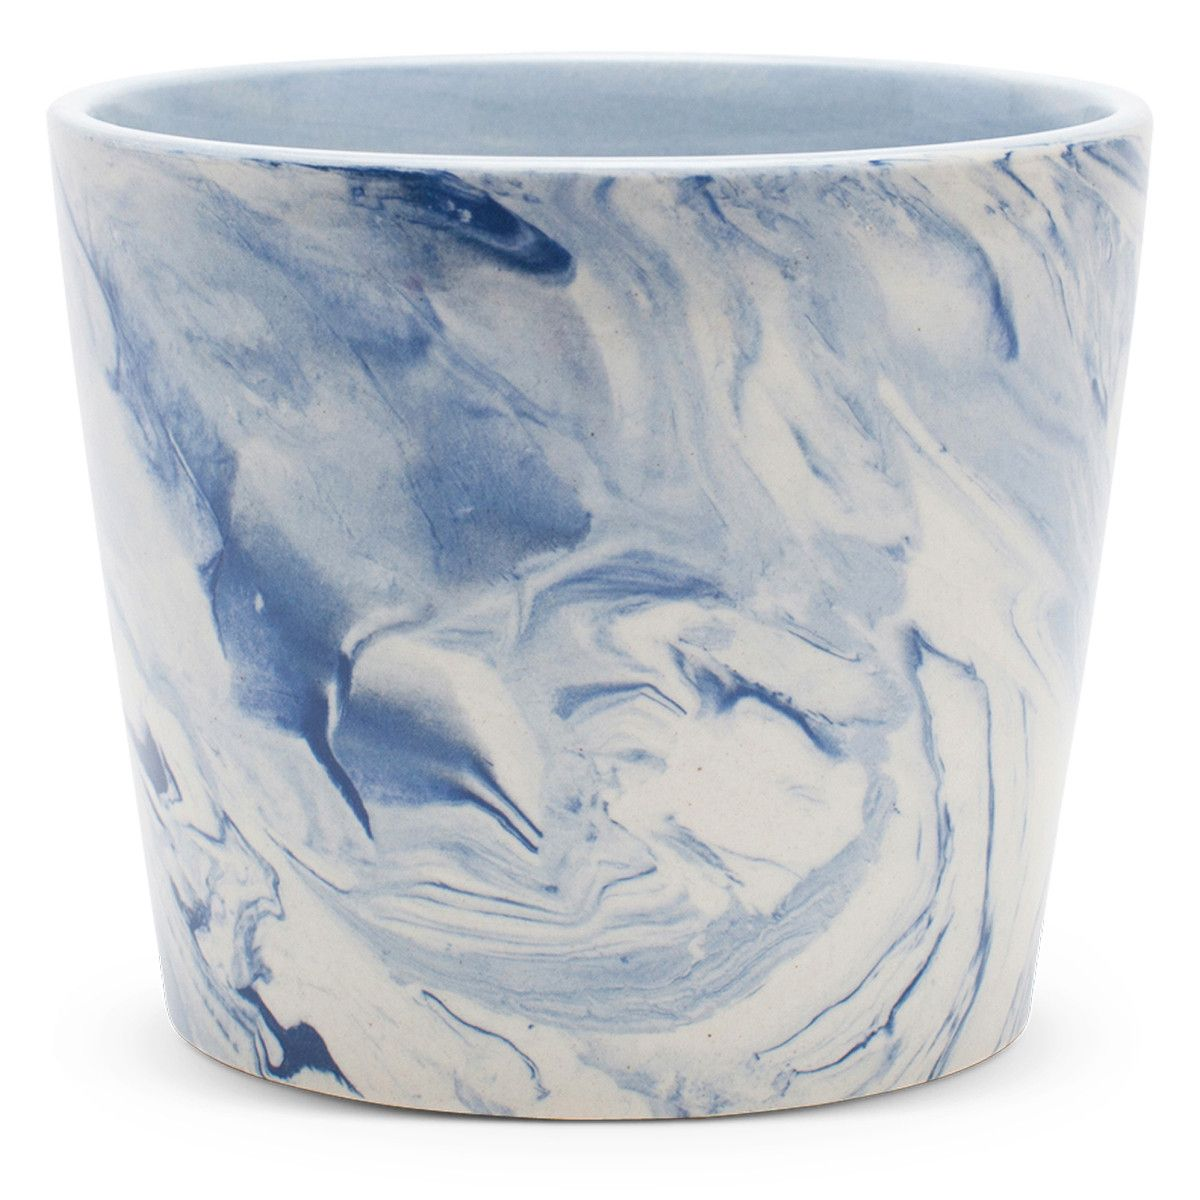 Furbish blue swirl planter